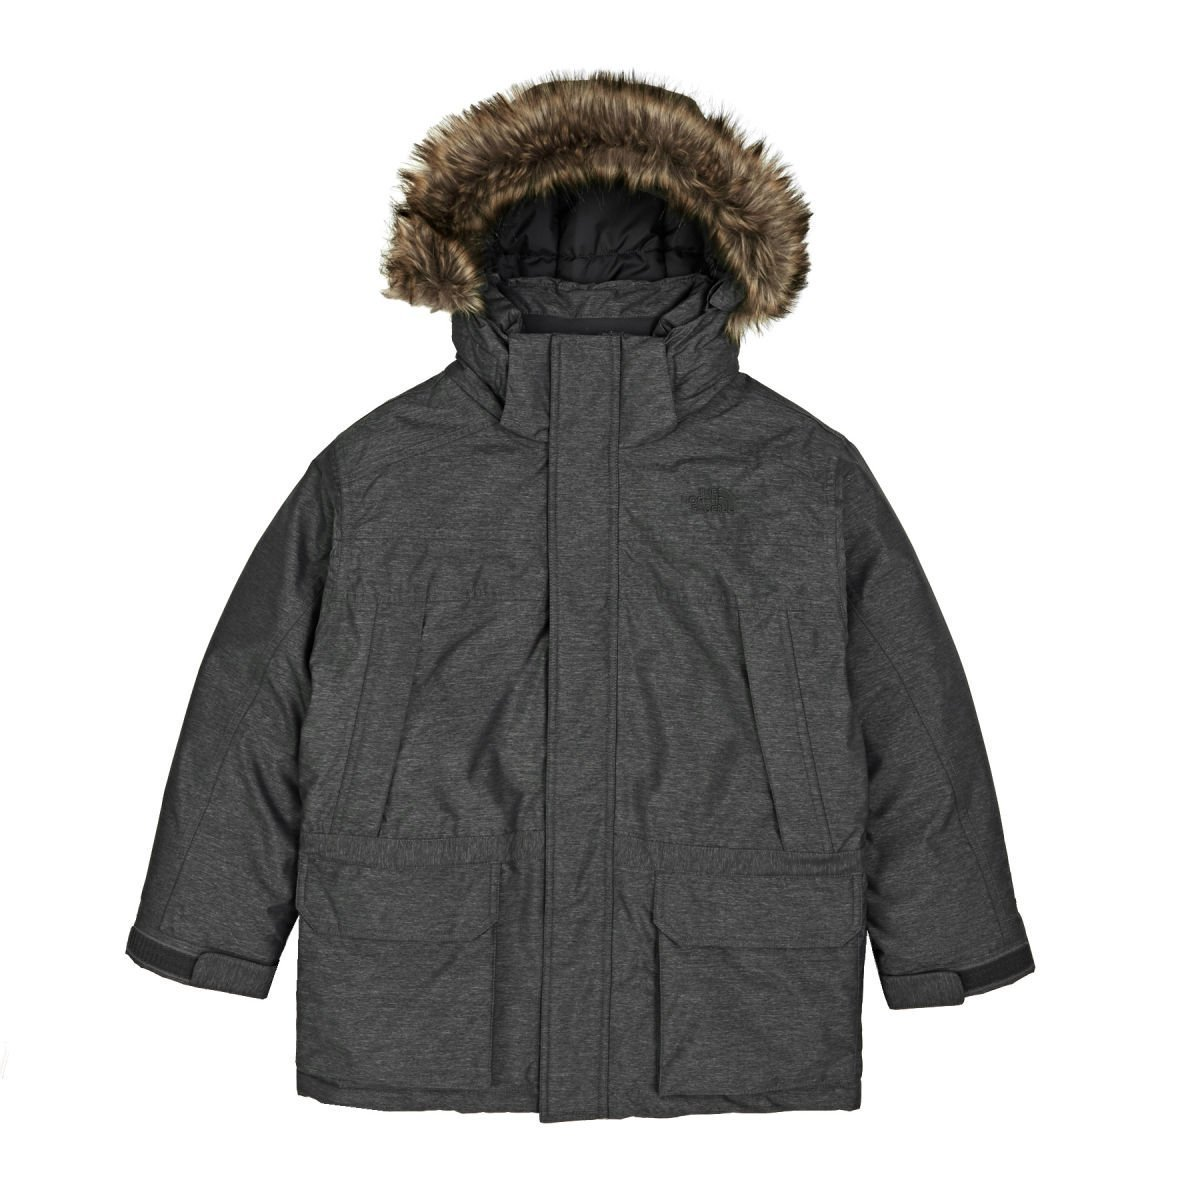 The North Face BOYS MCMURDO DOWN PARKA color: TNF MEDIUM GREY HEATHER size: LG (14-16 Big Kids) by The North Face (Image #1)